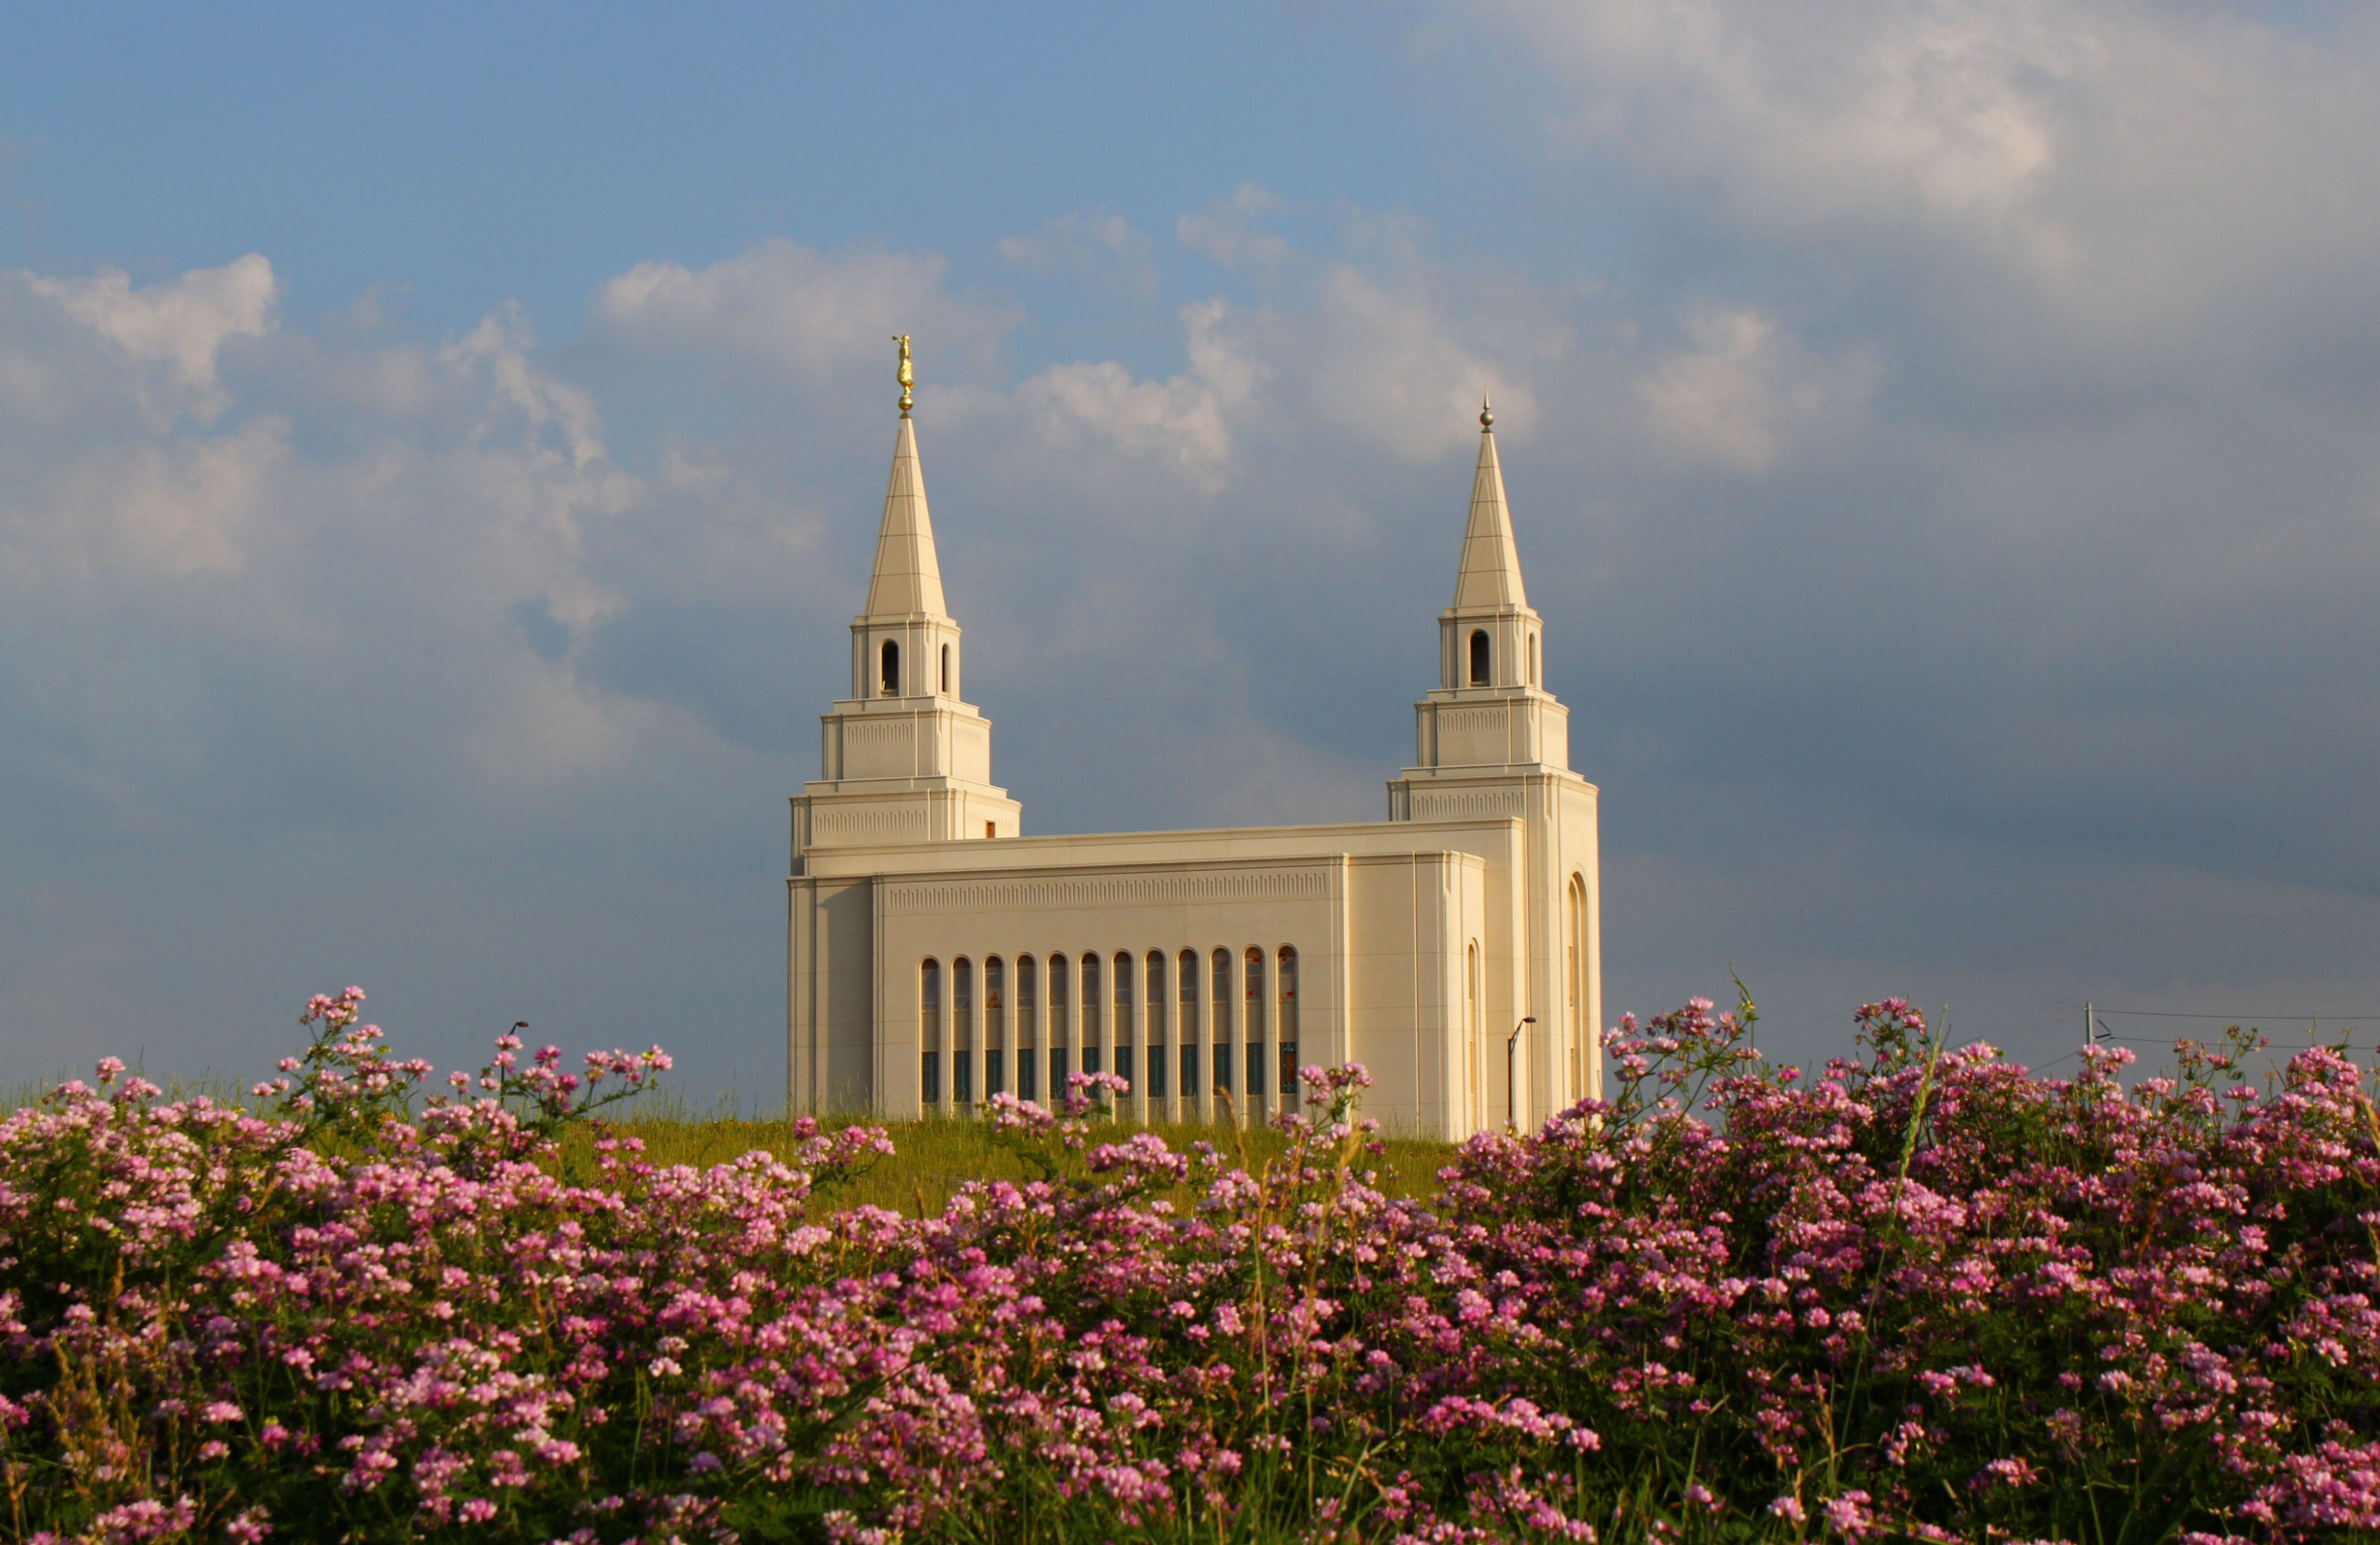 The kansas city missouri temple side view - Lds temple wallpaper ...